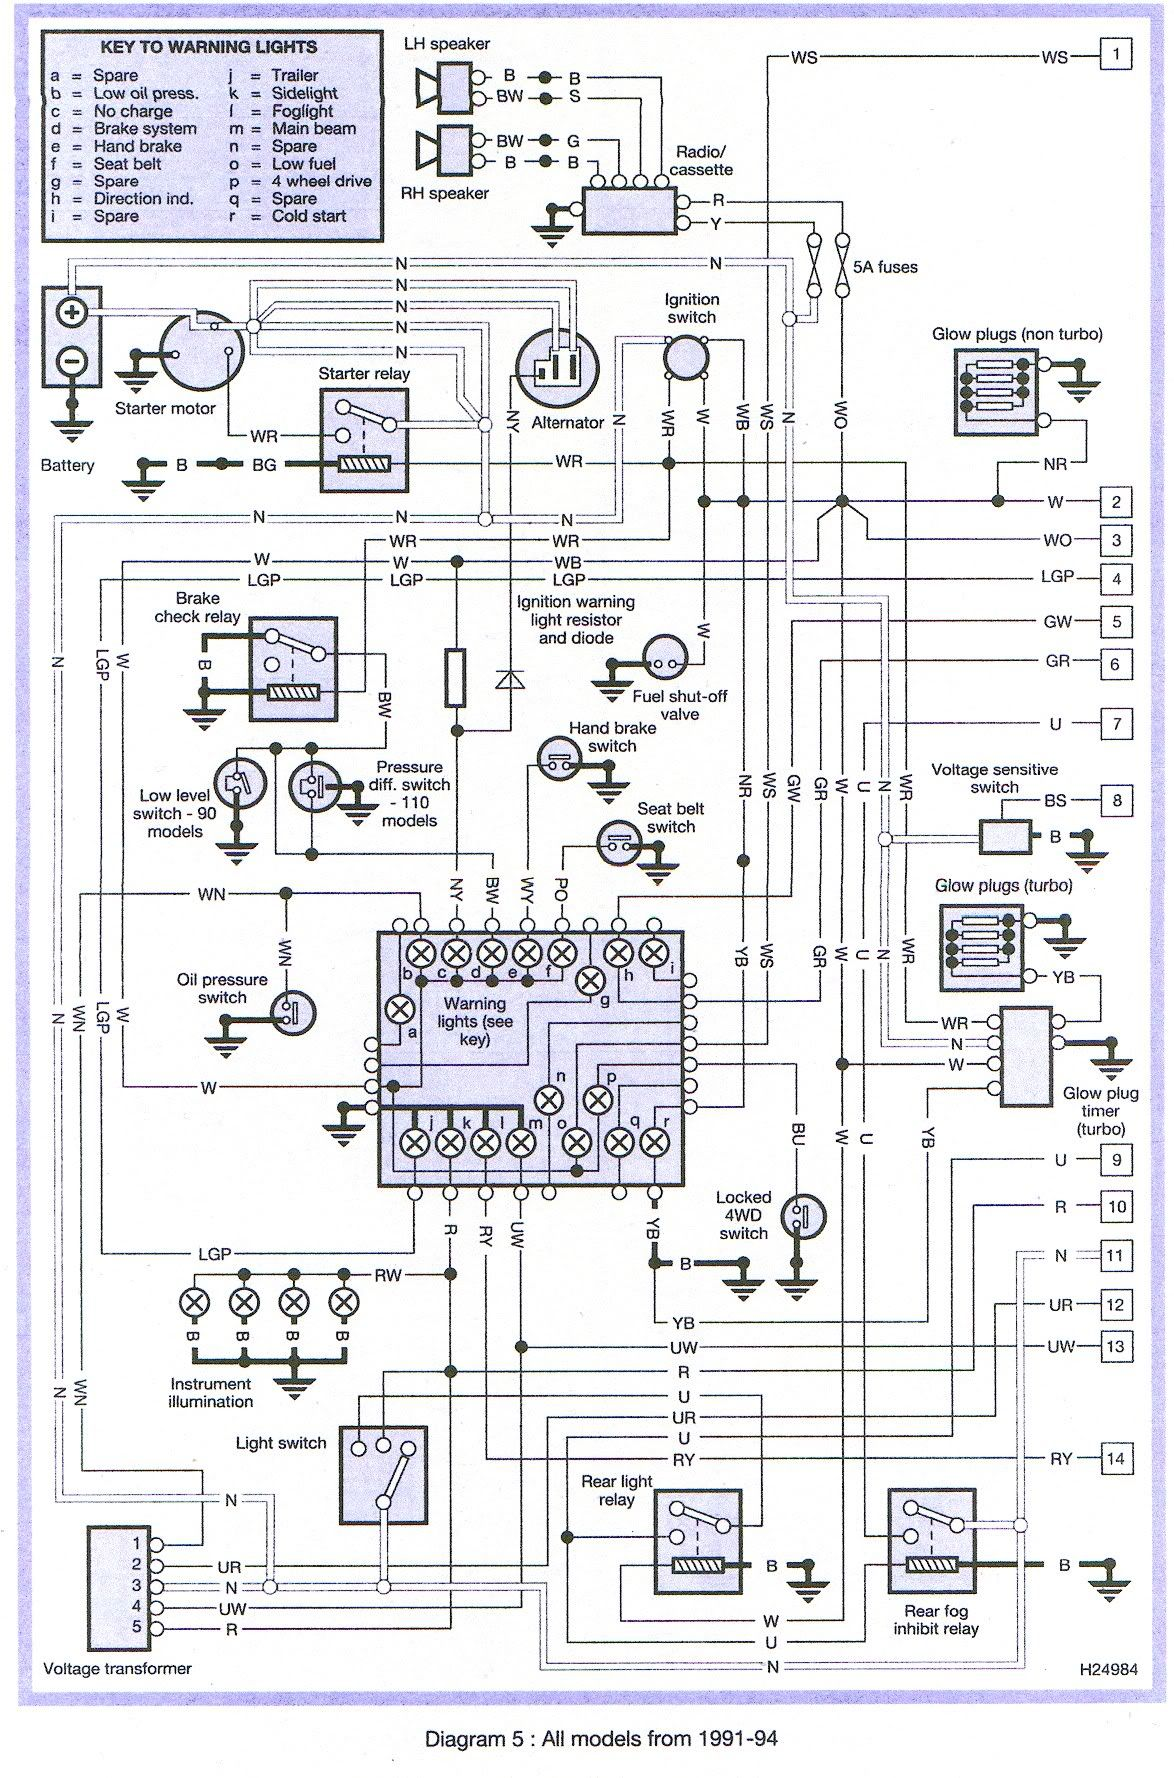 07629544bfff38ad2881b2c21312c6e6 land rover discovery wiring diagram manual repair with engine land rover series 3 wiring diagram at gsmx.co